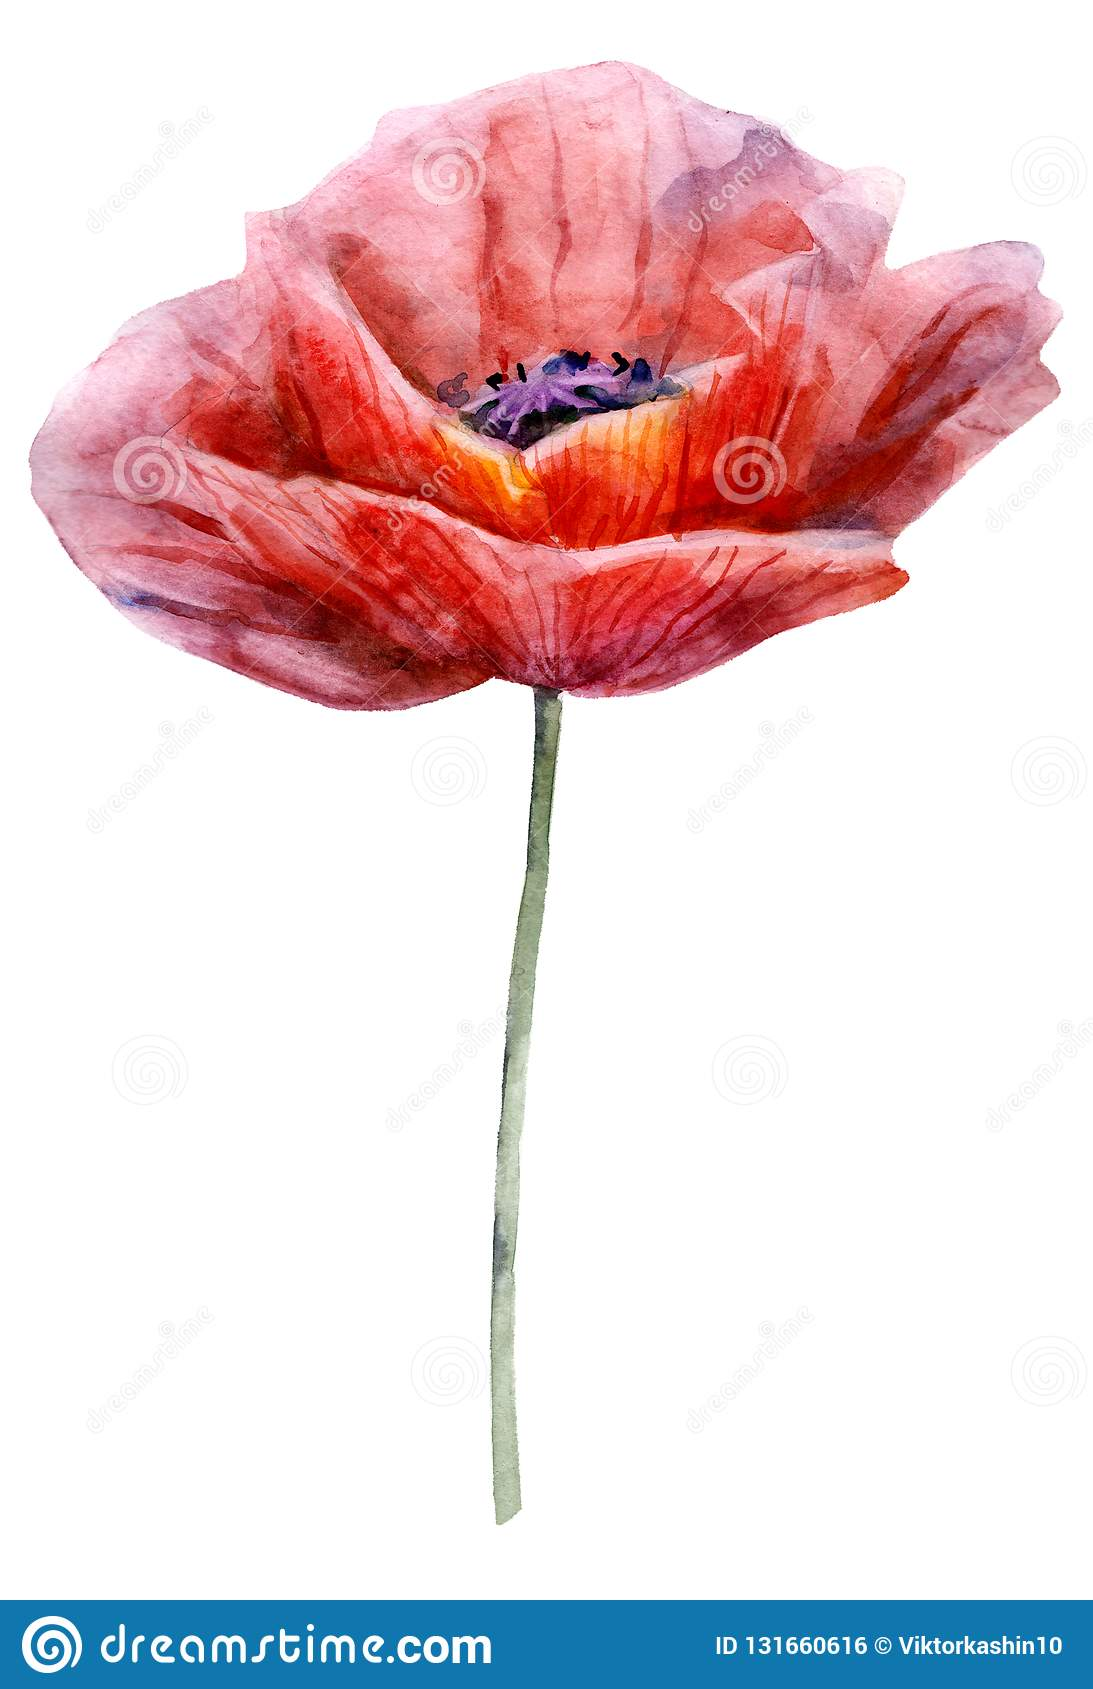 Watercolor poppy. The flower clipart isolated on a white background. Hand painted illustration for design prints.